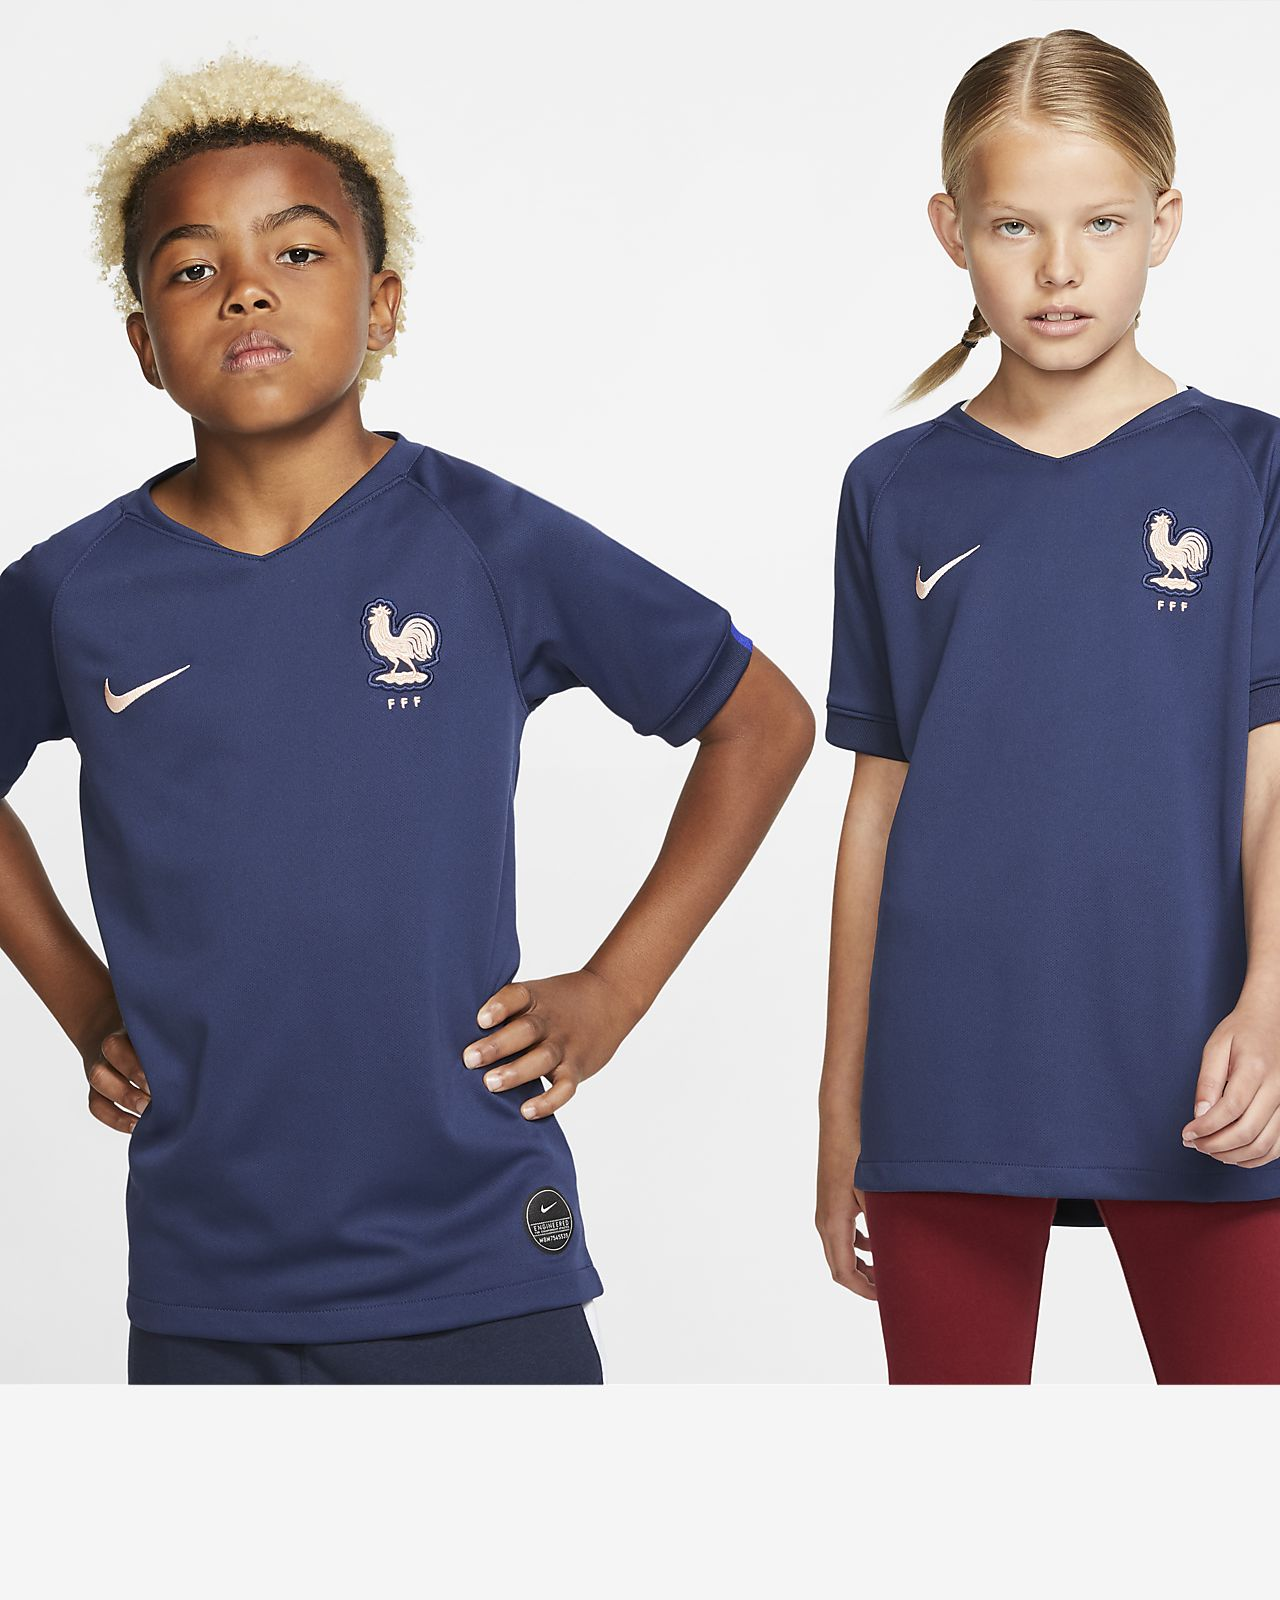 Maillot de football FFF 2019 Stadium Home pour Enfant plus âgé